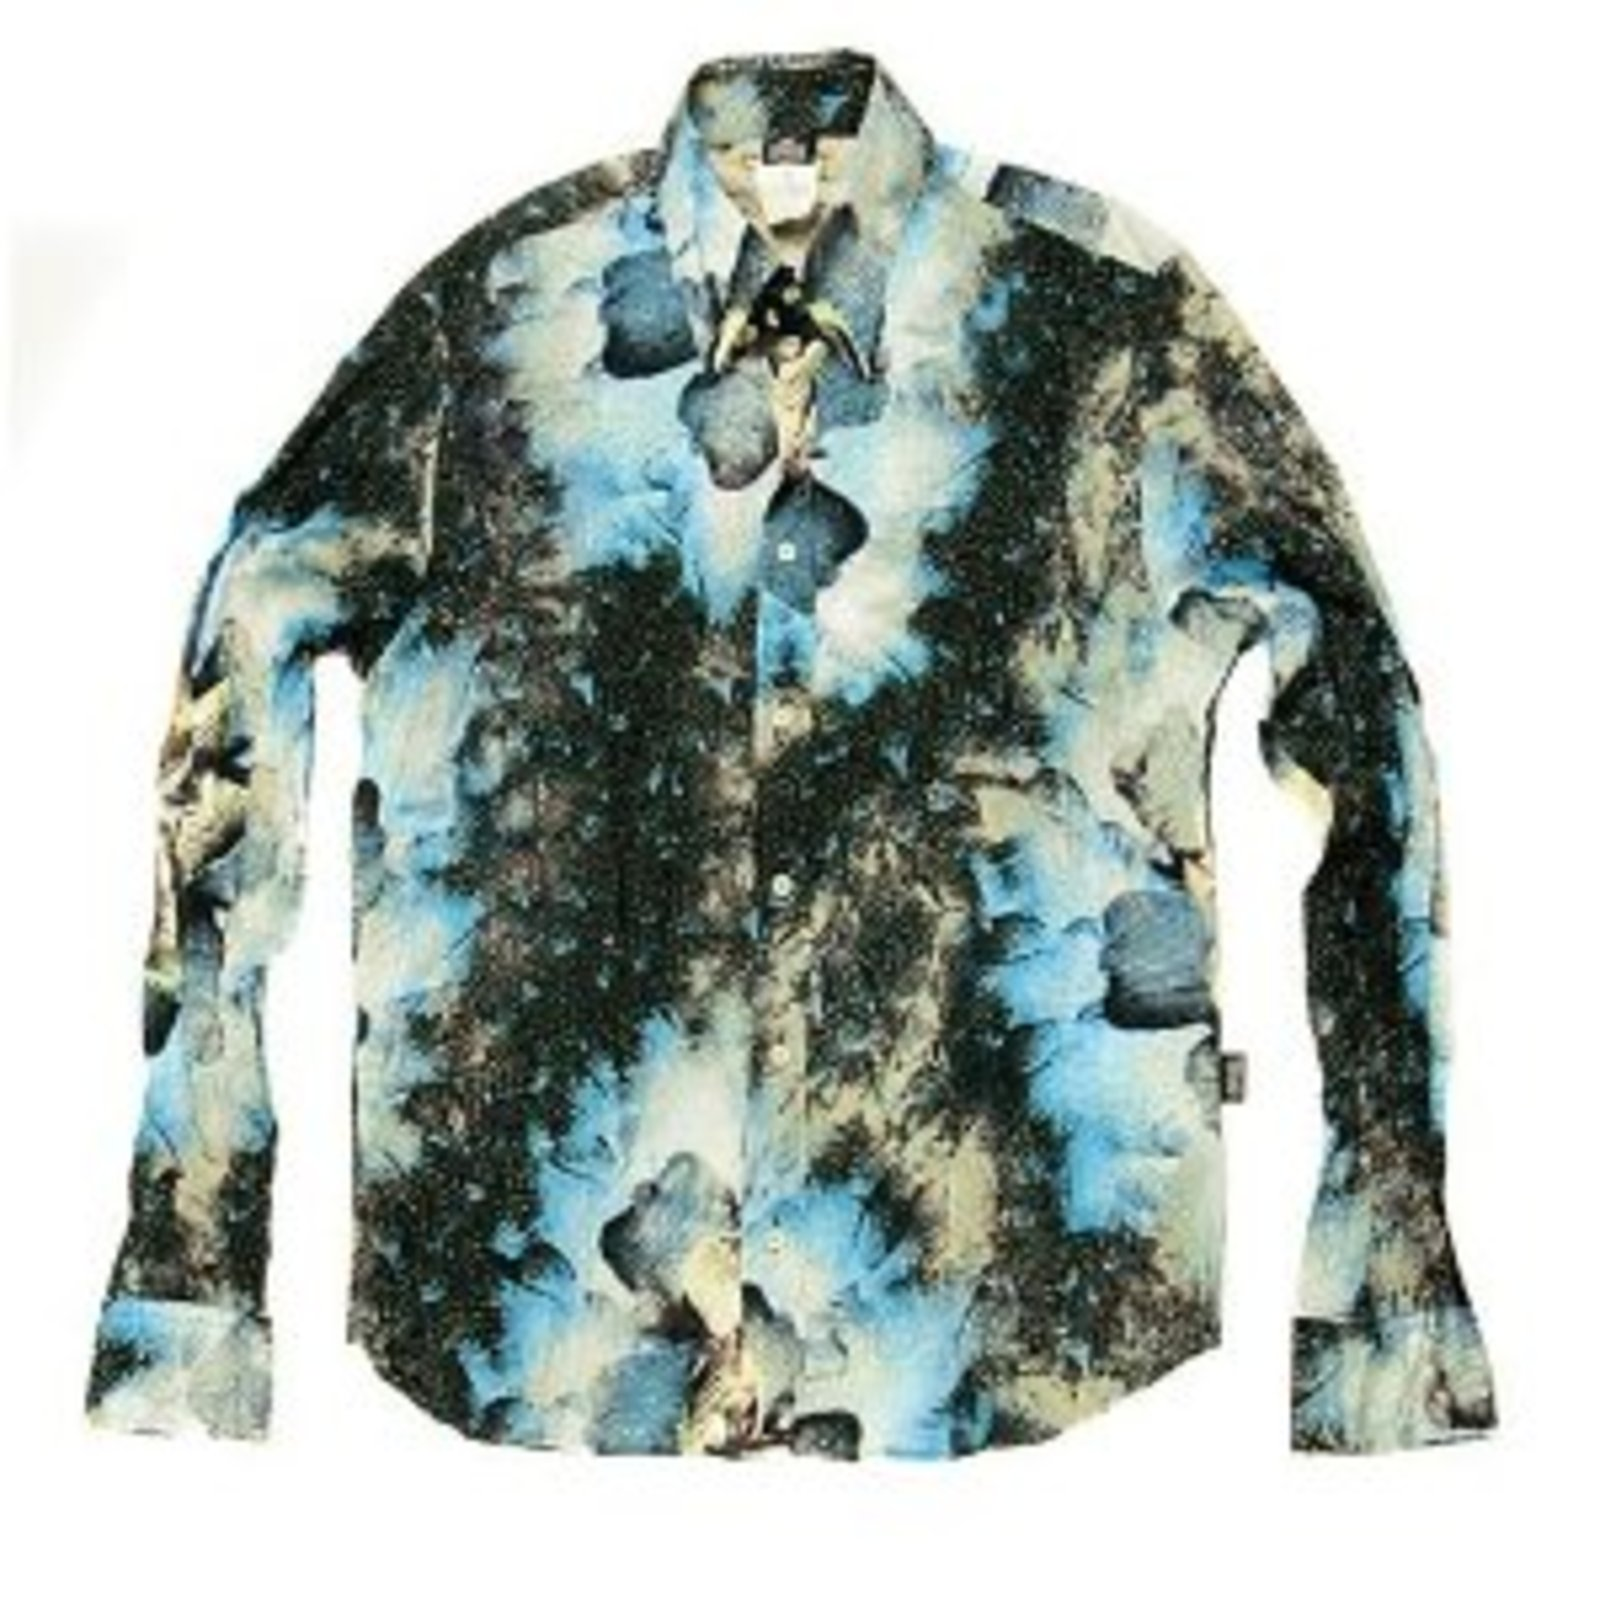 5b8d355f5 Versace Jeans Couture long sleeve shirt. VJCM3238 at Togged Clothing